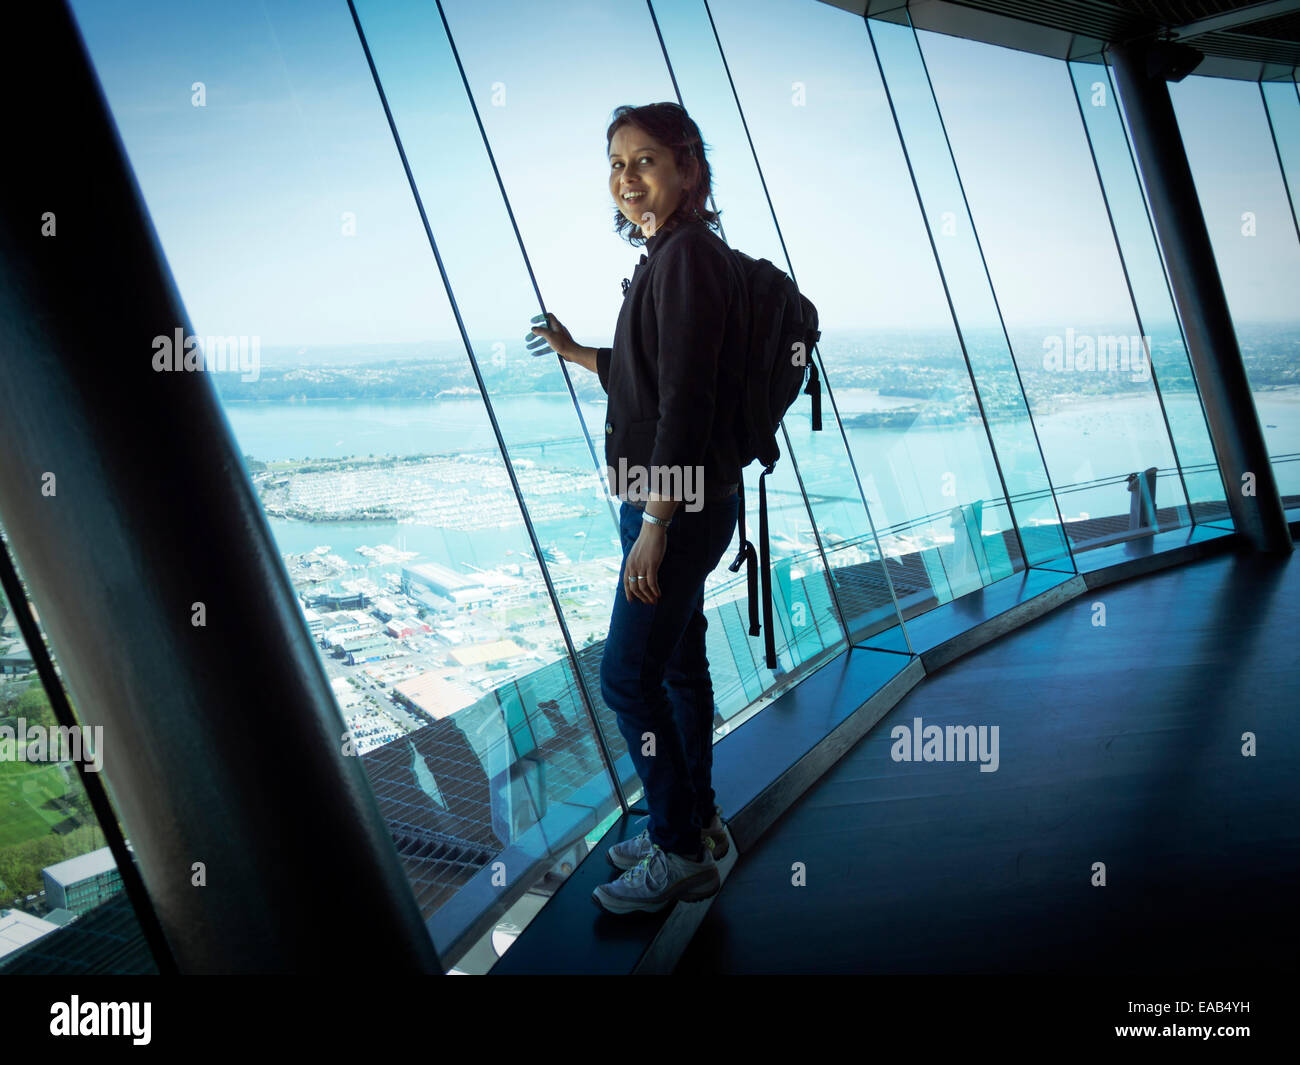 MR. No apparent photography or PR restrictions on Skytower website or ticket. Stock Photo